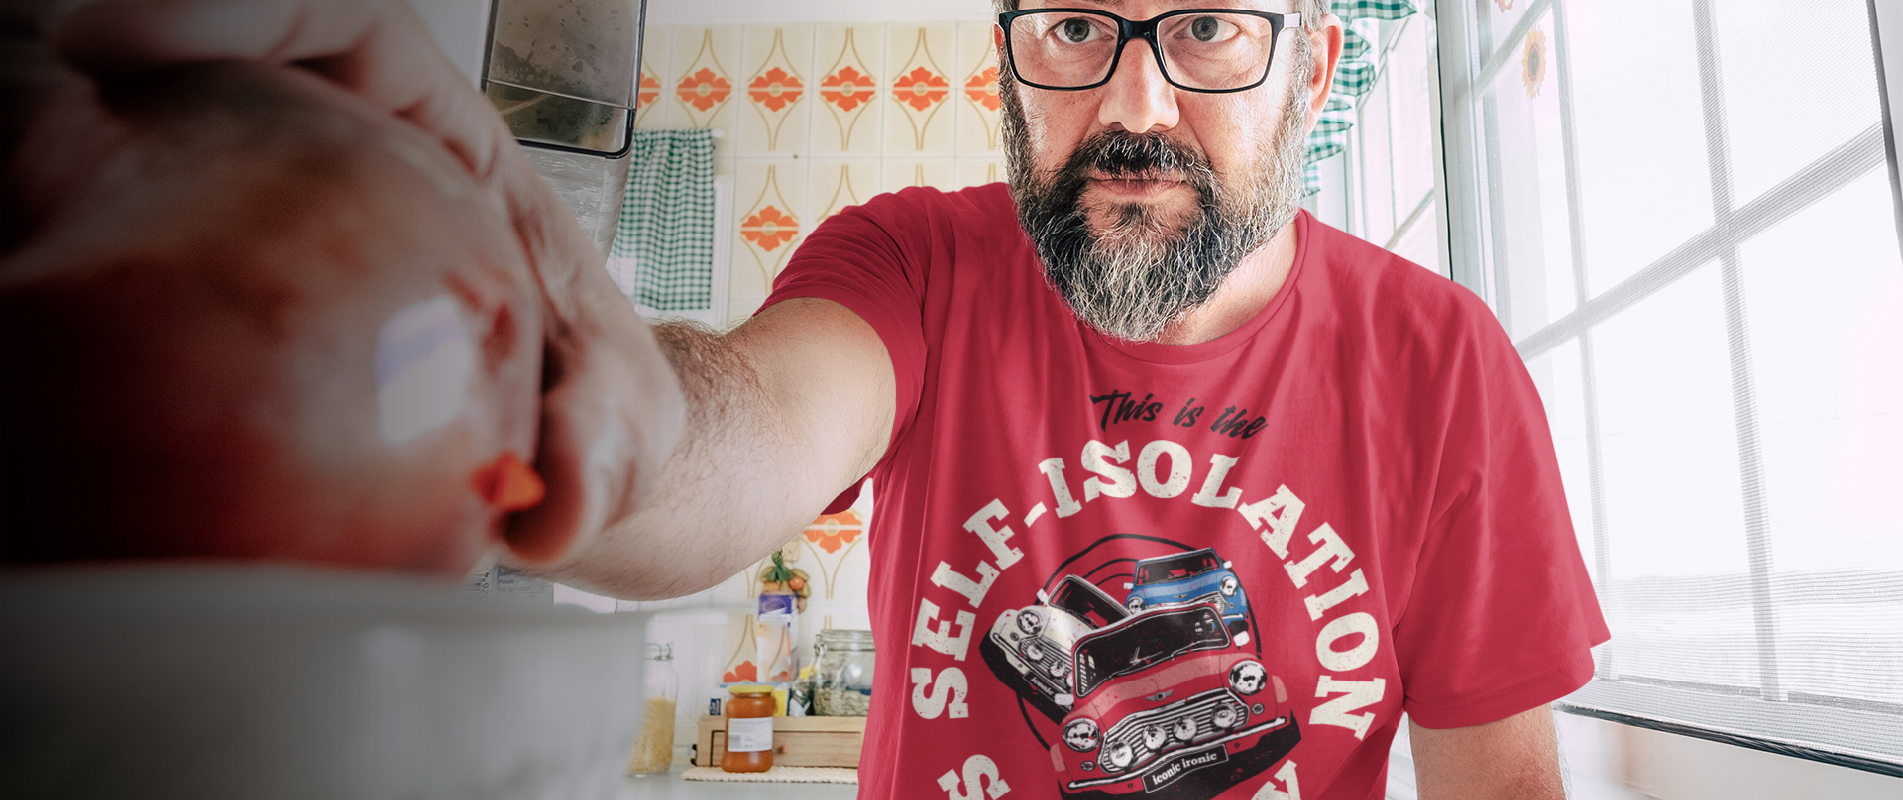 Man in kitchen reaching for snack wearing self isolation t shirt